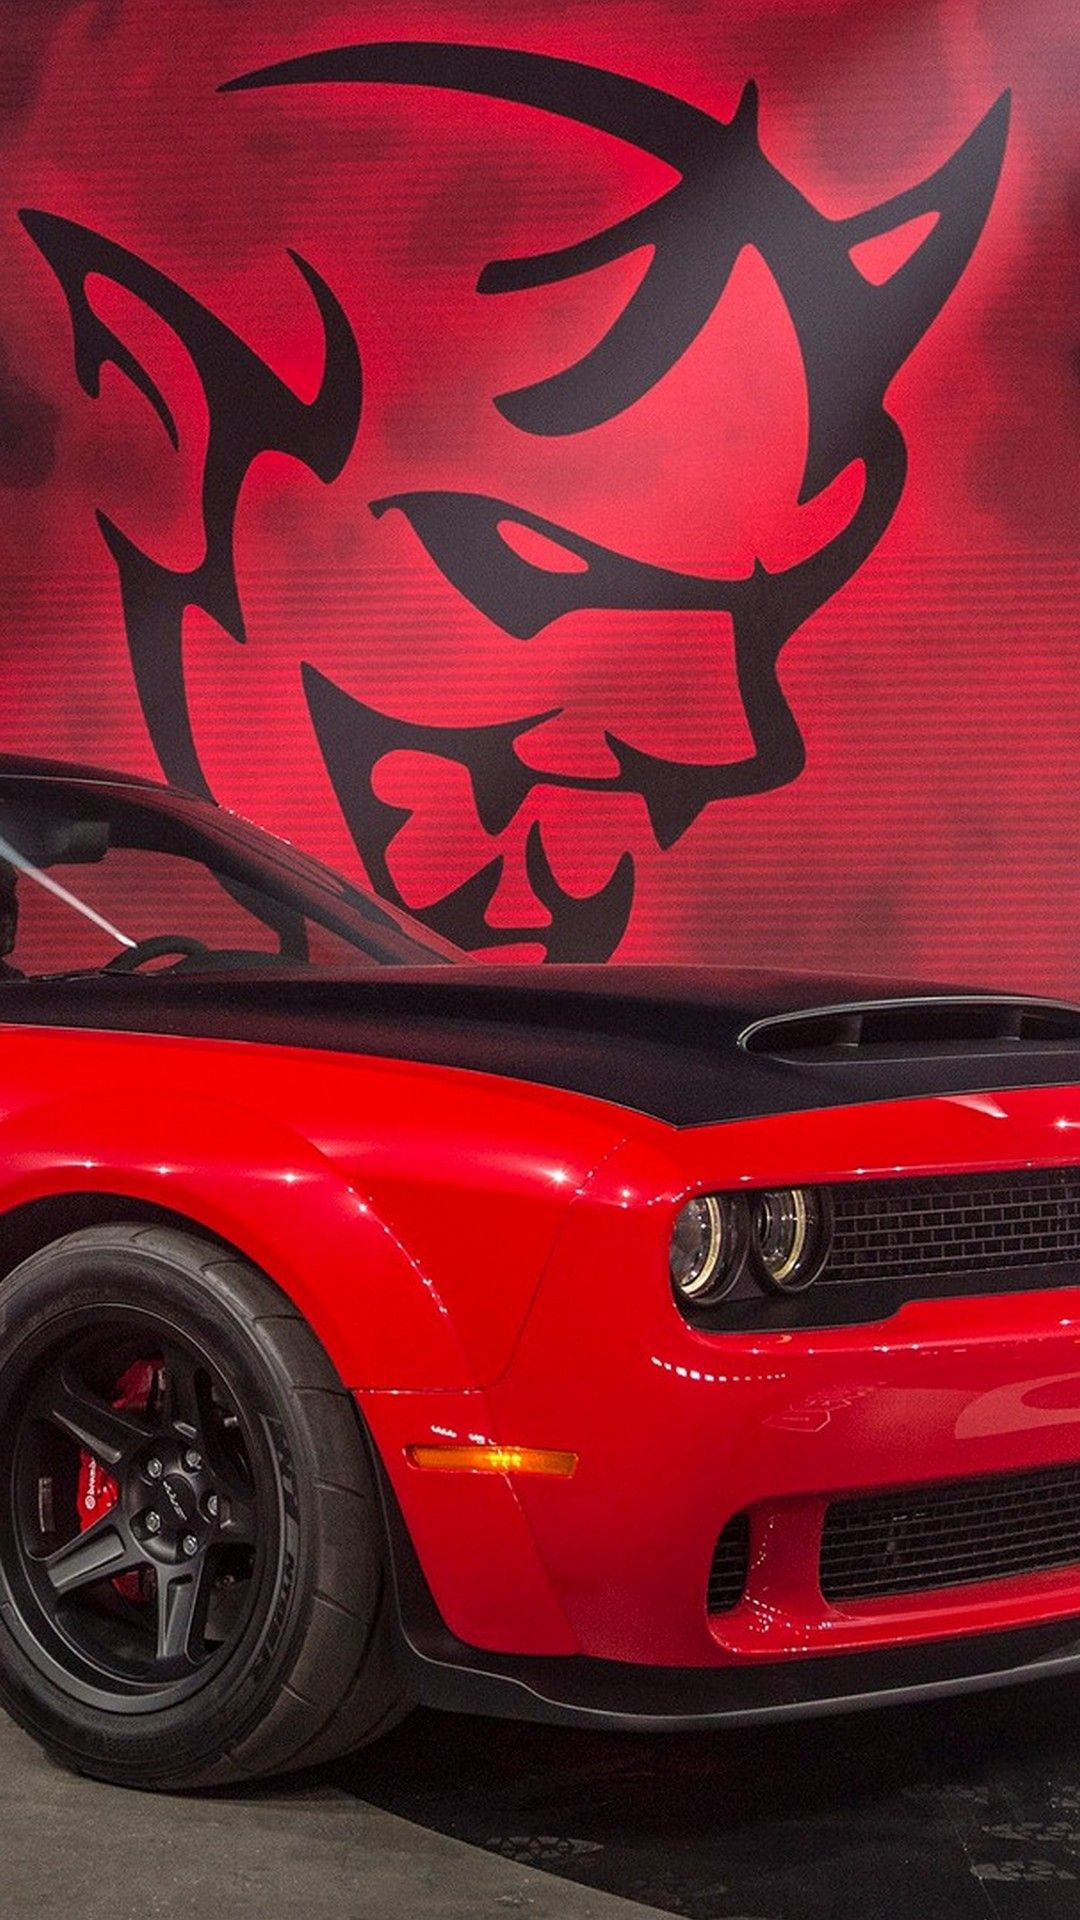 2018 Dodge Demon Iphone Wallpaper 2020 Dodge Challenger Demon 343725 Hd Wallpaper Backgrounds Download